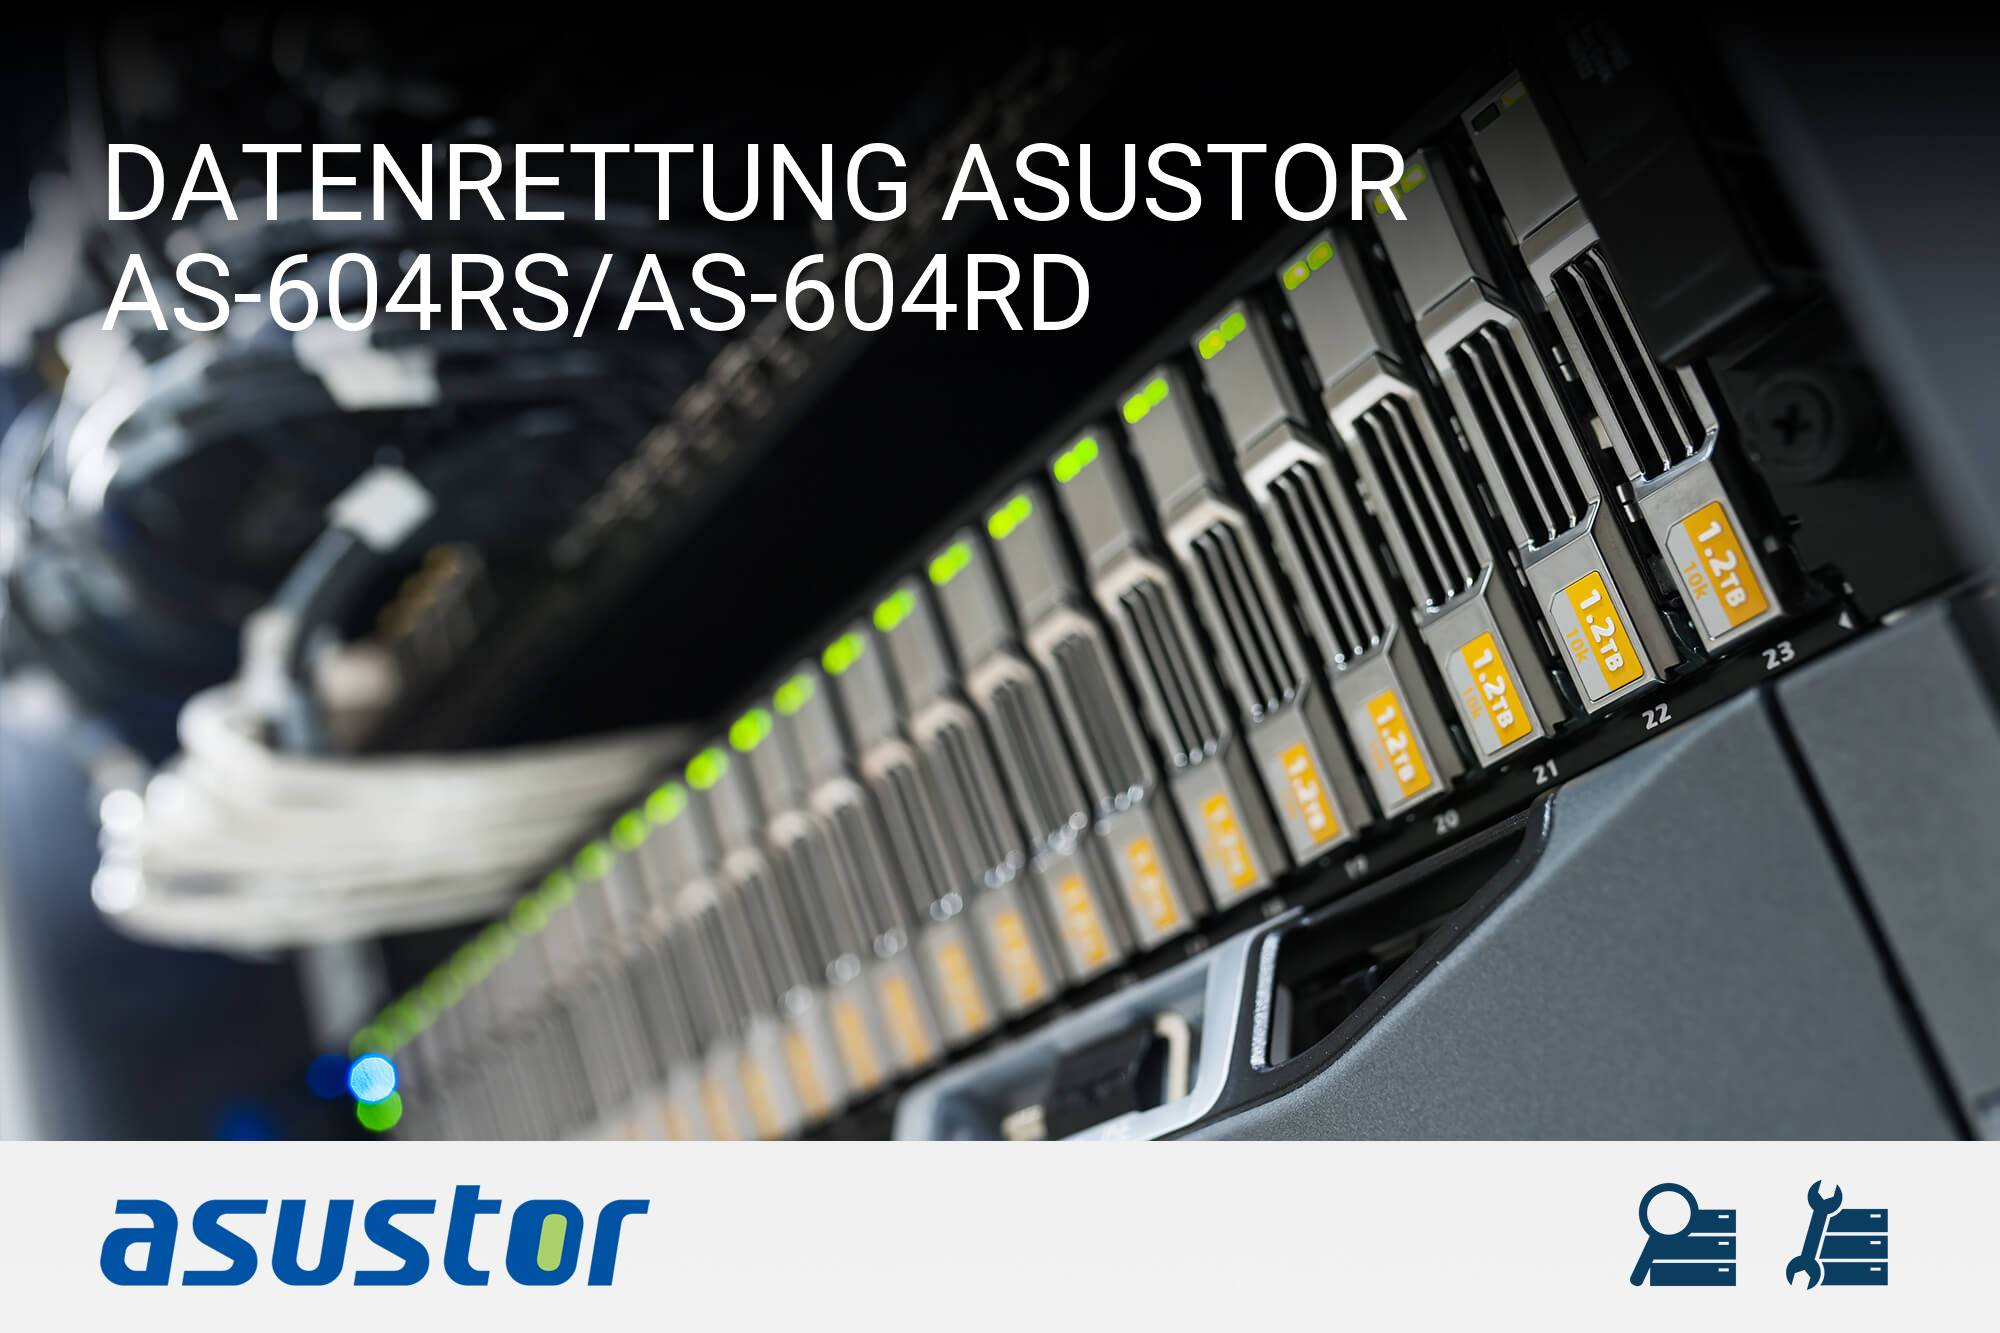 Asustor AS-604RS/AS-604RD